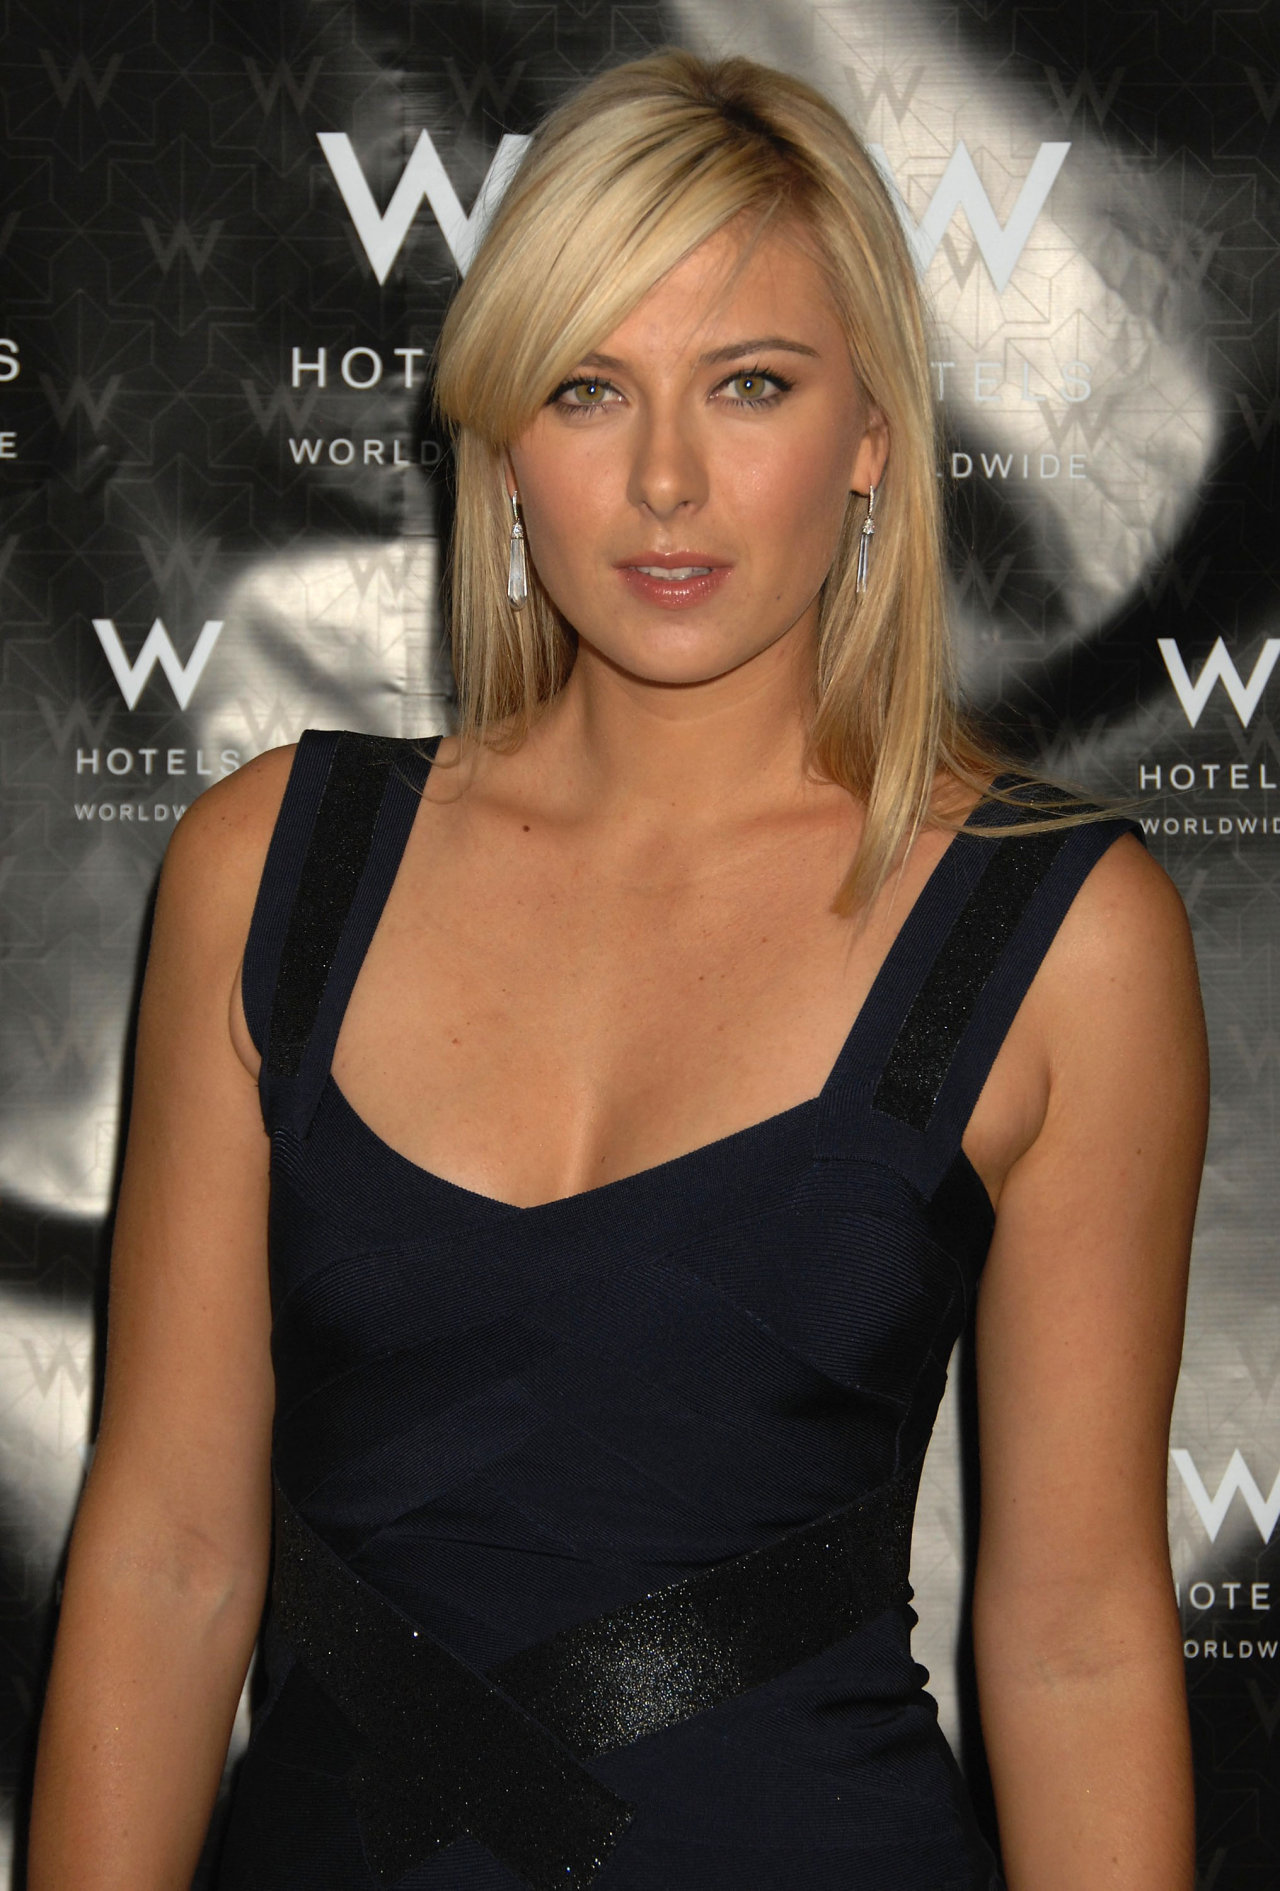 Maria Sharapova leaked wallpapers